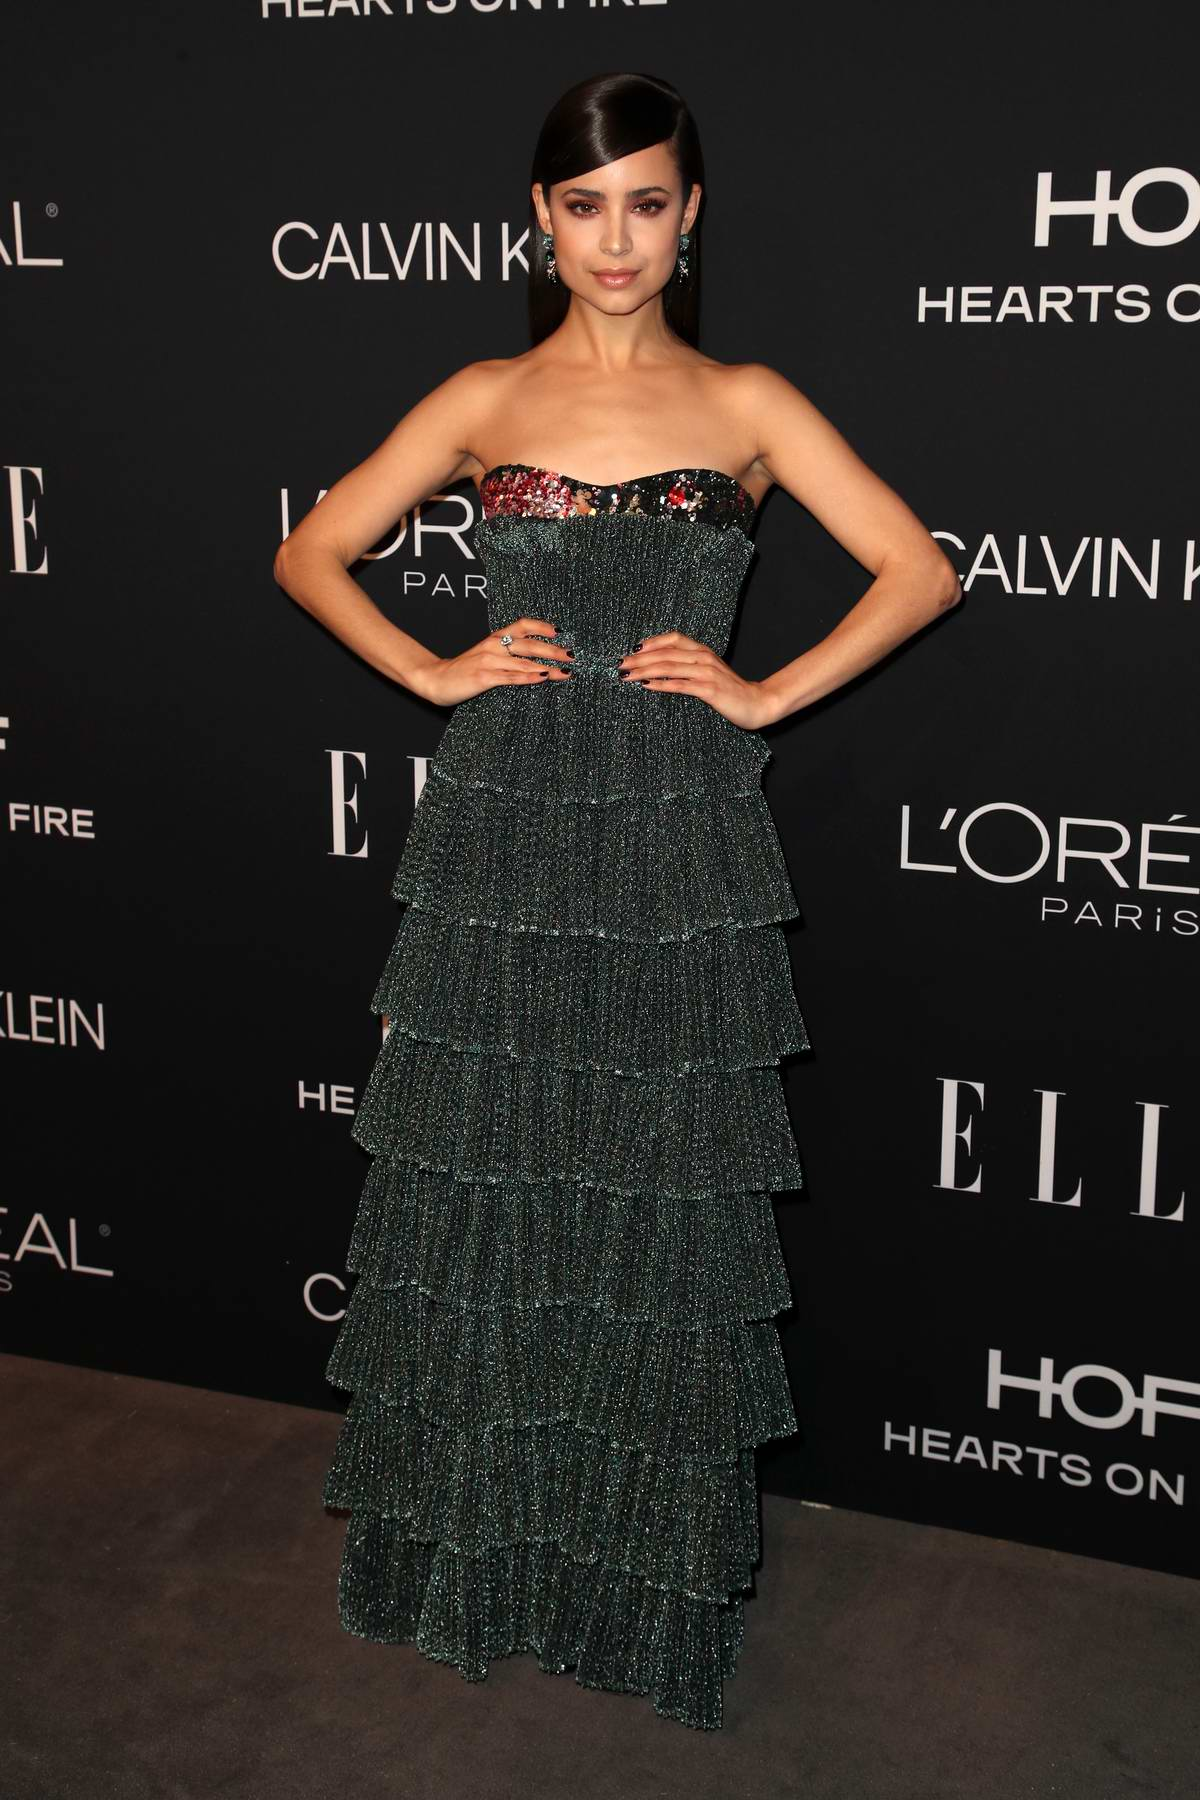 Sofia Carson attends ELLE's 25th Annual Women In Hollywood Celebration at the Four Seasons Hotel in Beverly Hills, Los Angeles